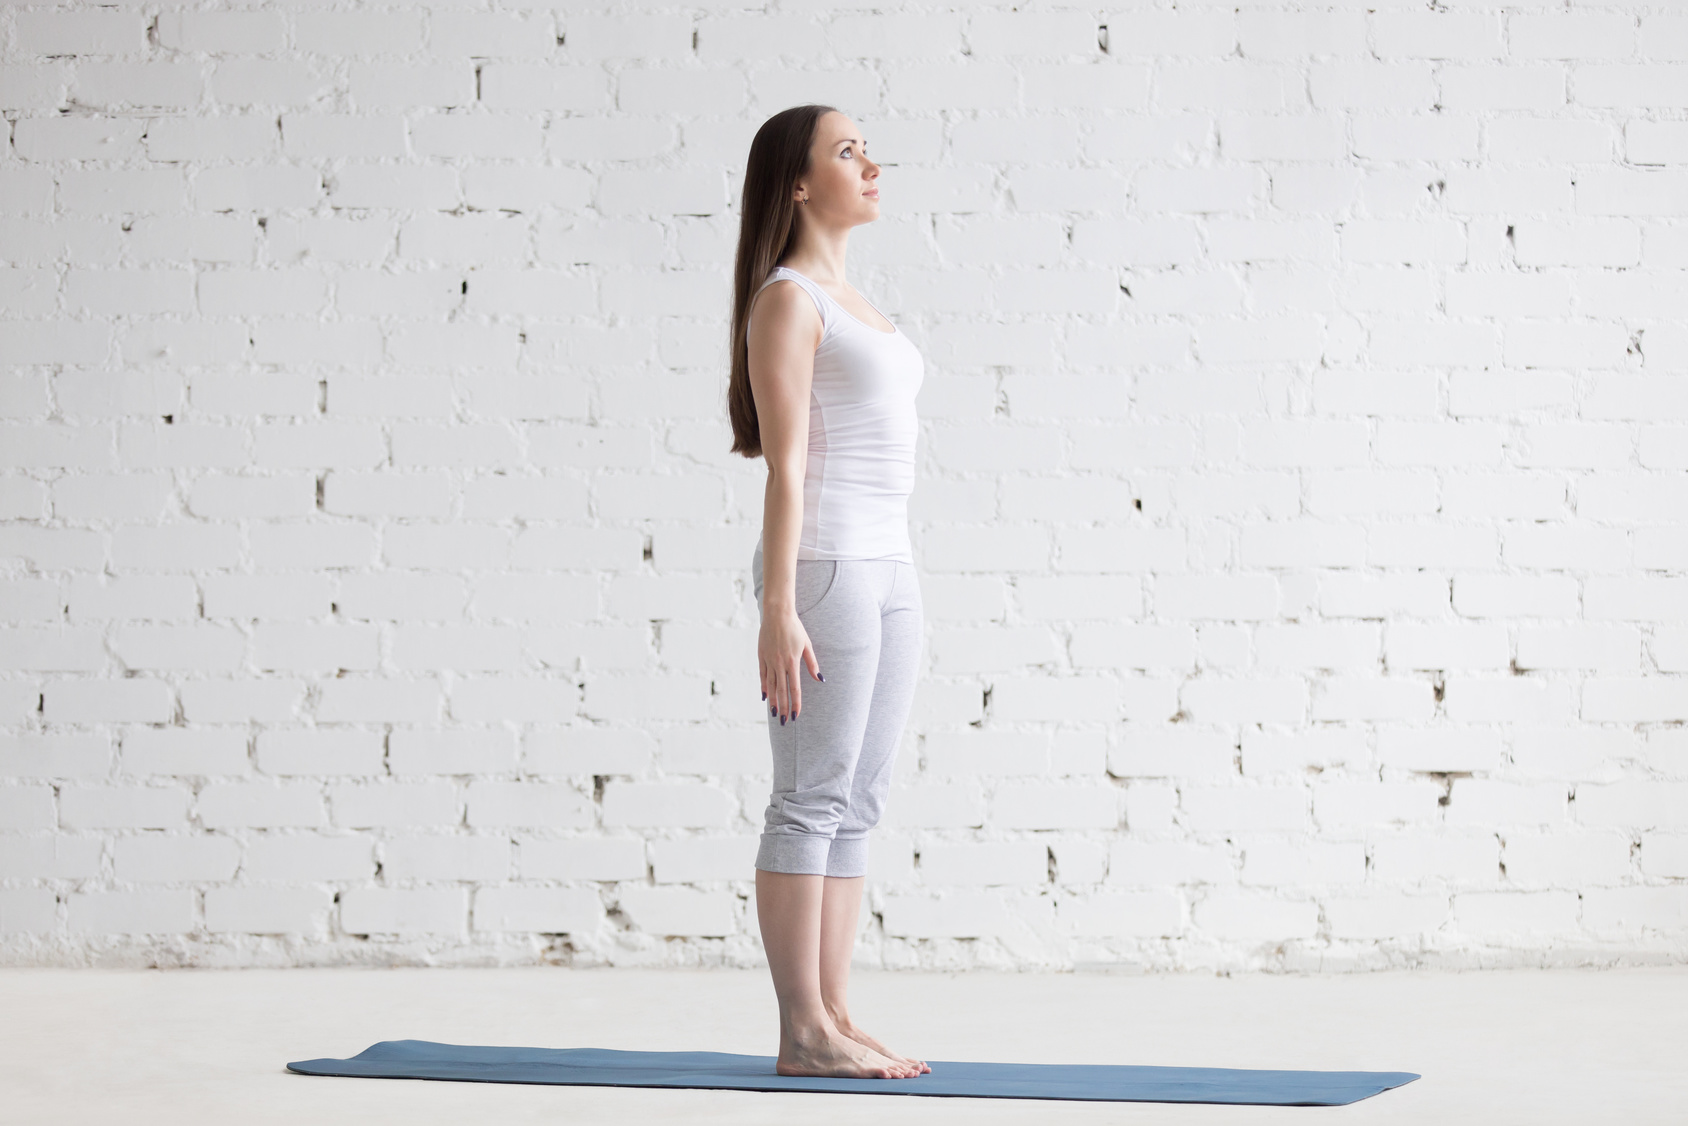 Tadasana, Mountain Pose, foundation pose, beginners yoga, yoga for medical conditions